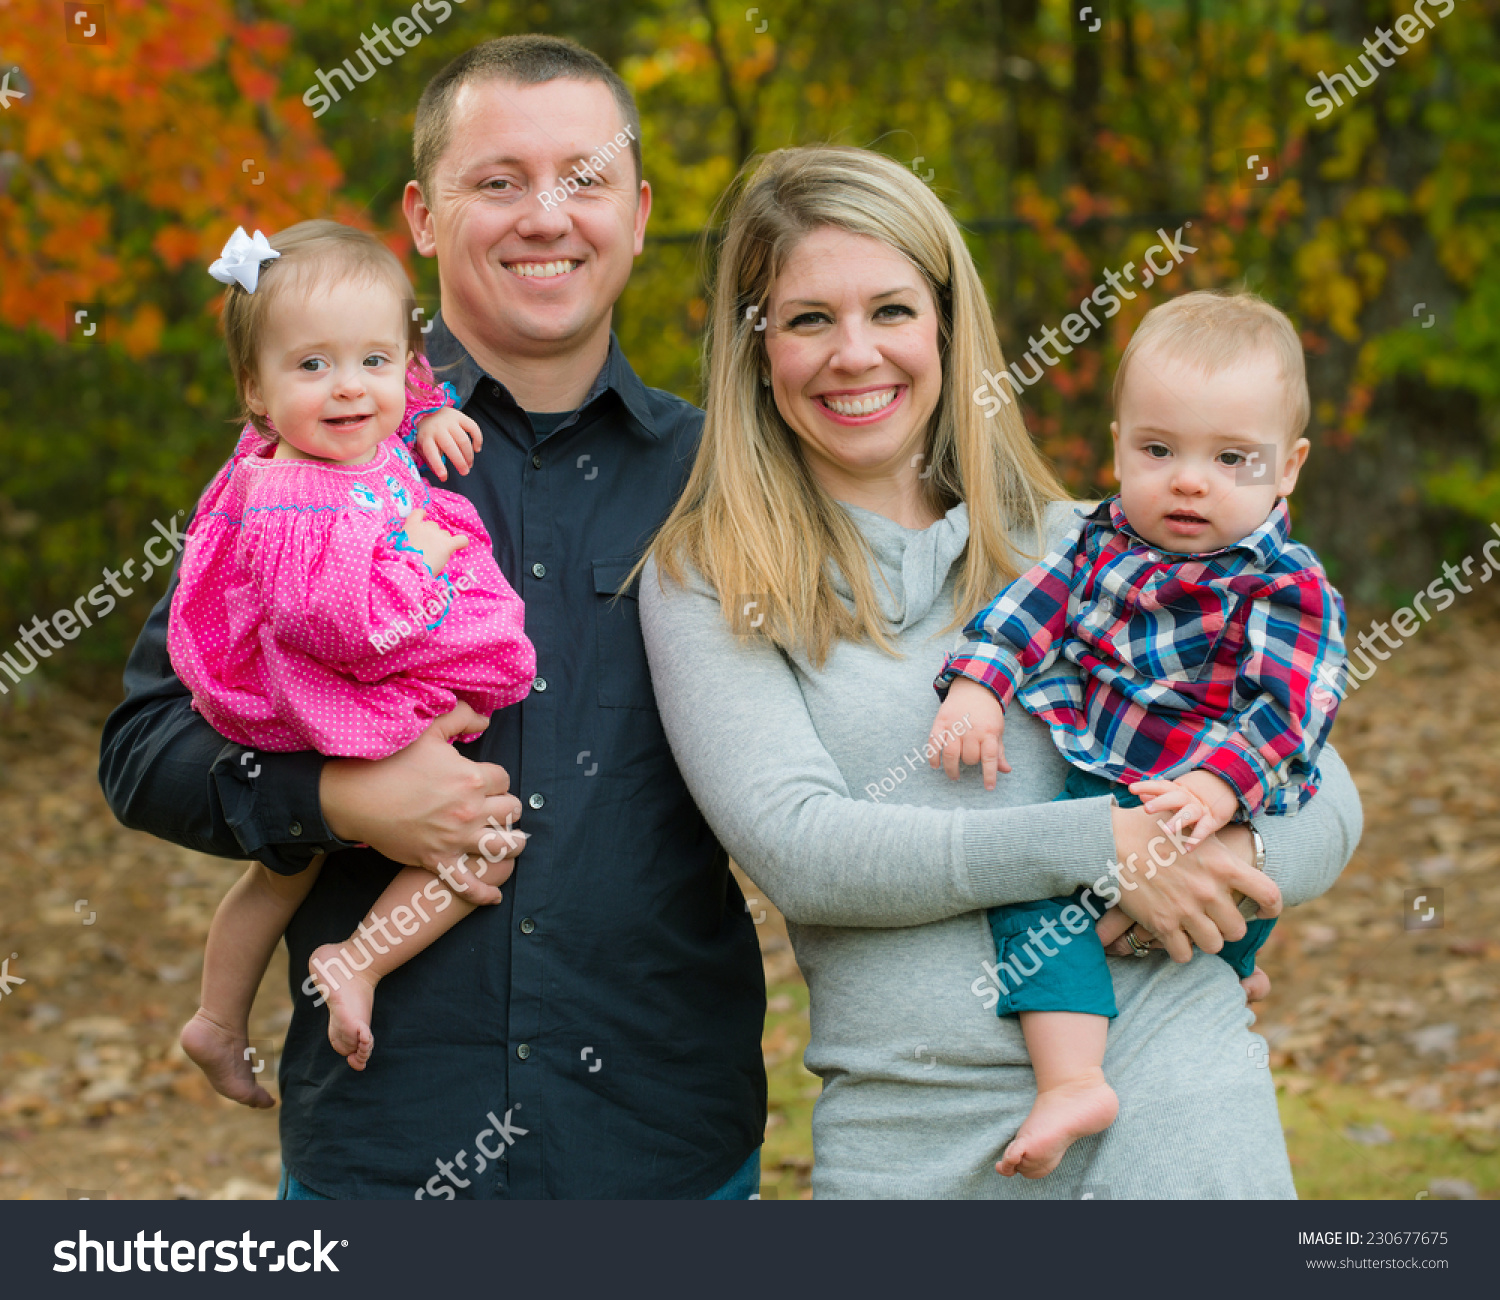 Portrait of family with twin babies during autumn